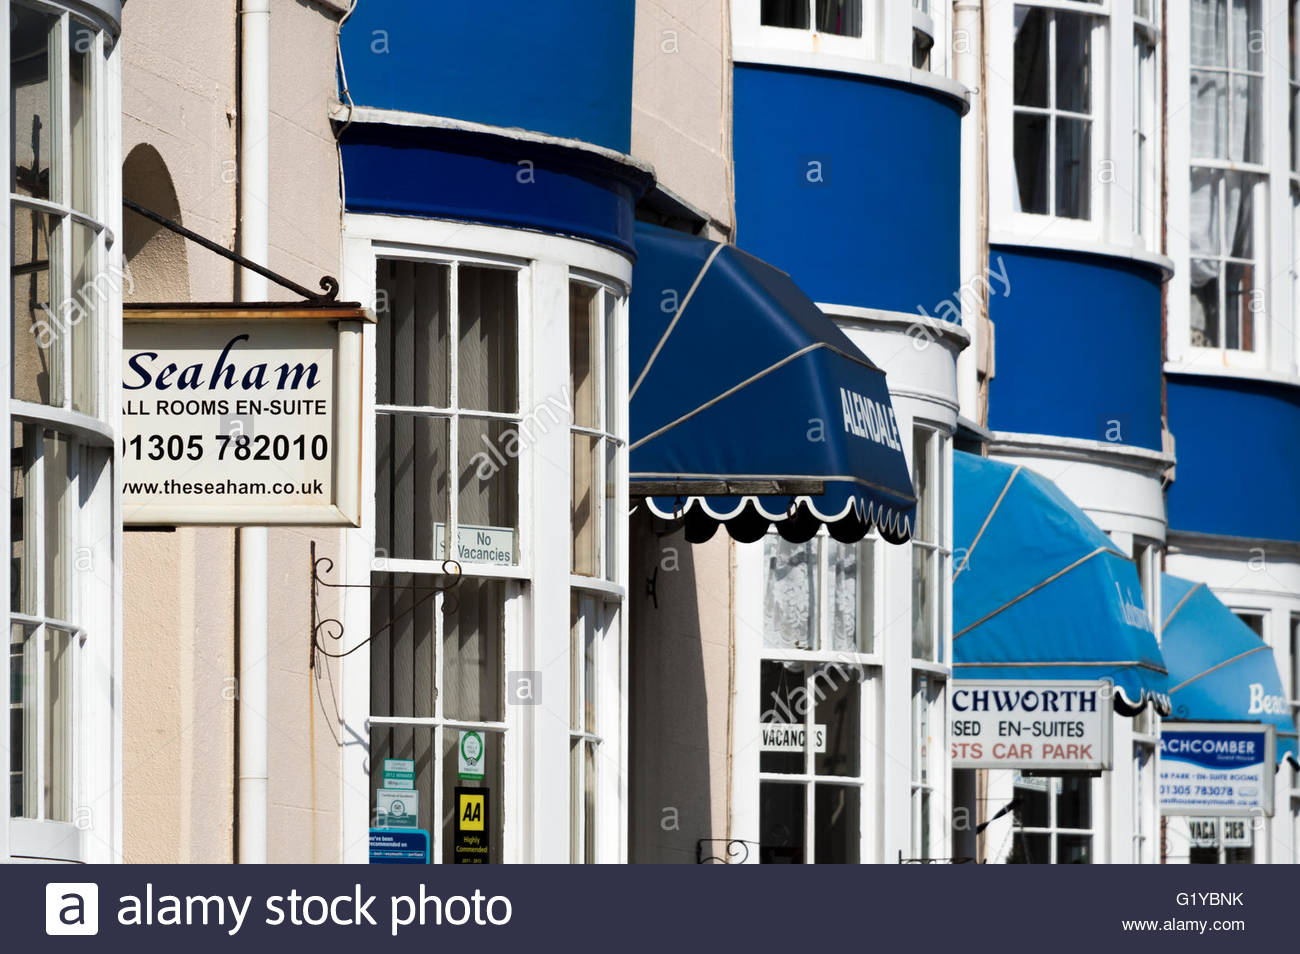 Looking along a row of terraced houses, Bed and Breakfast accommodation with round bay windows and canopies - Stock Image